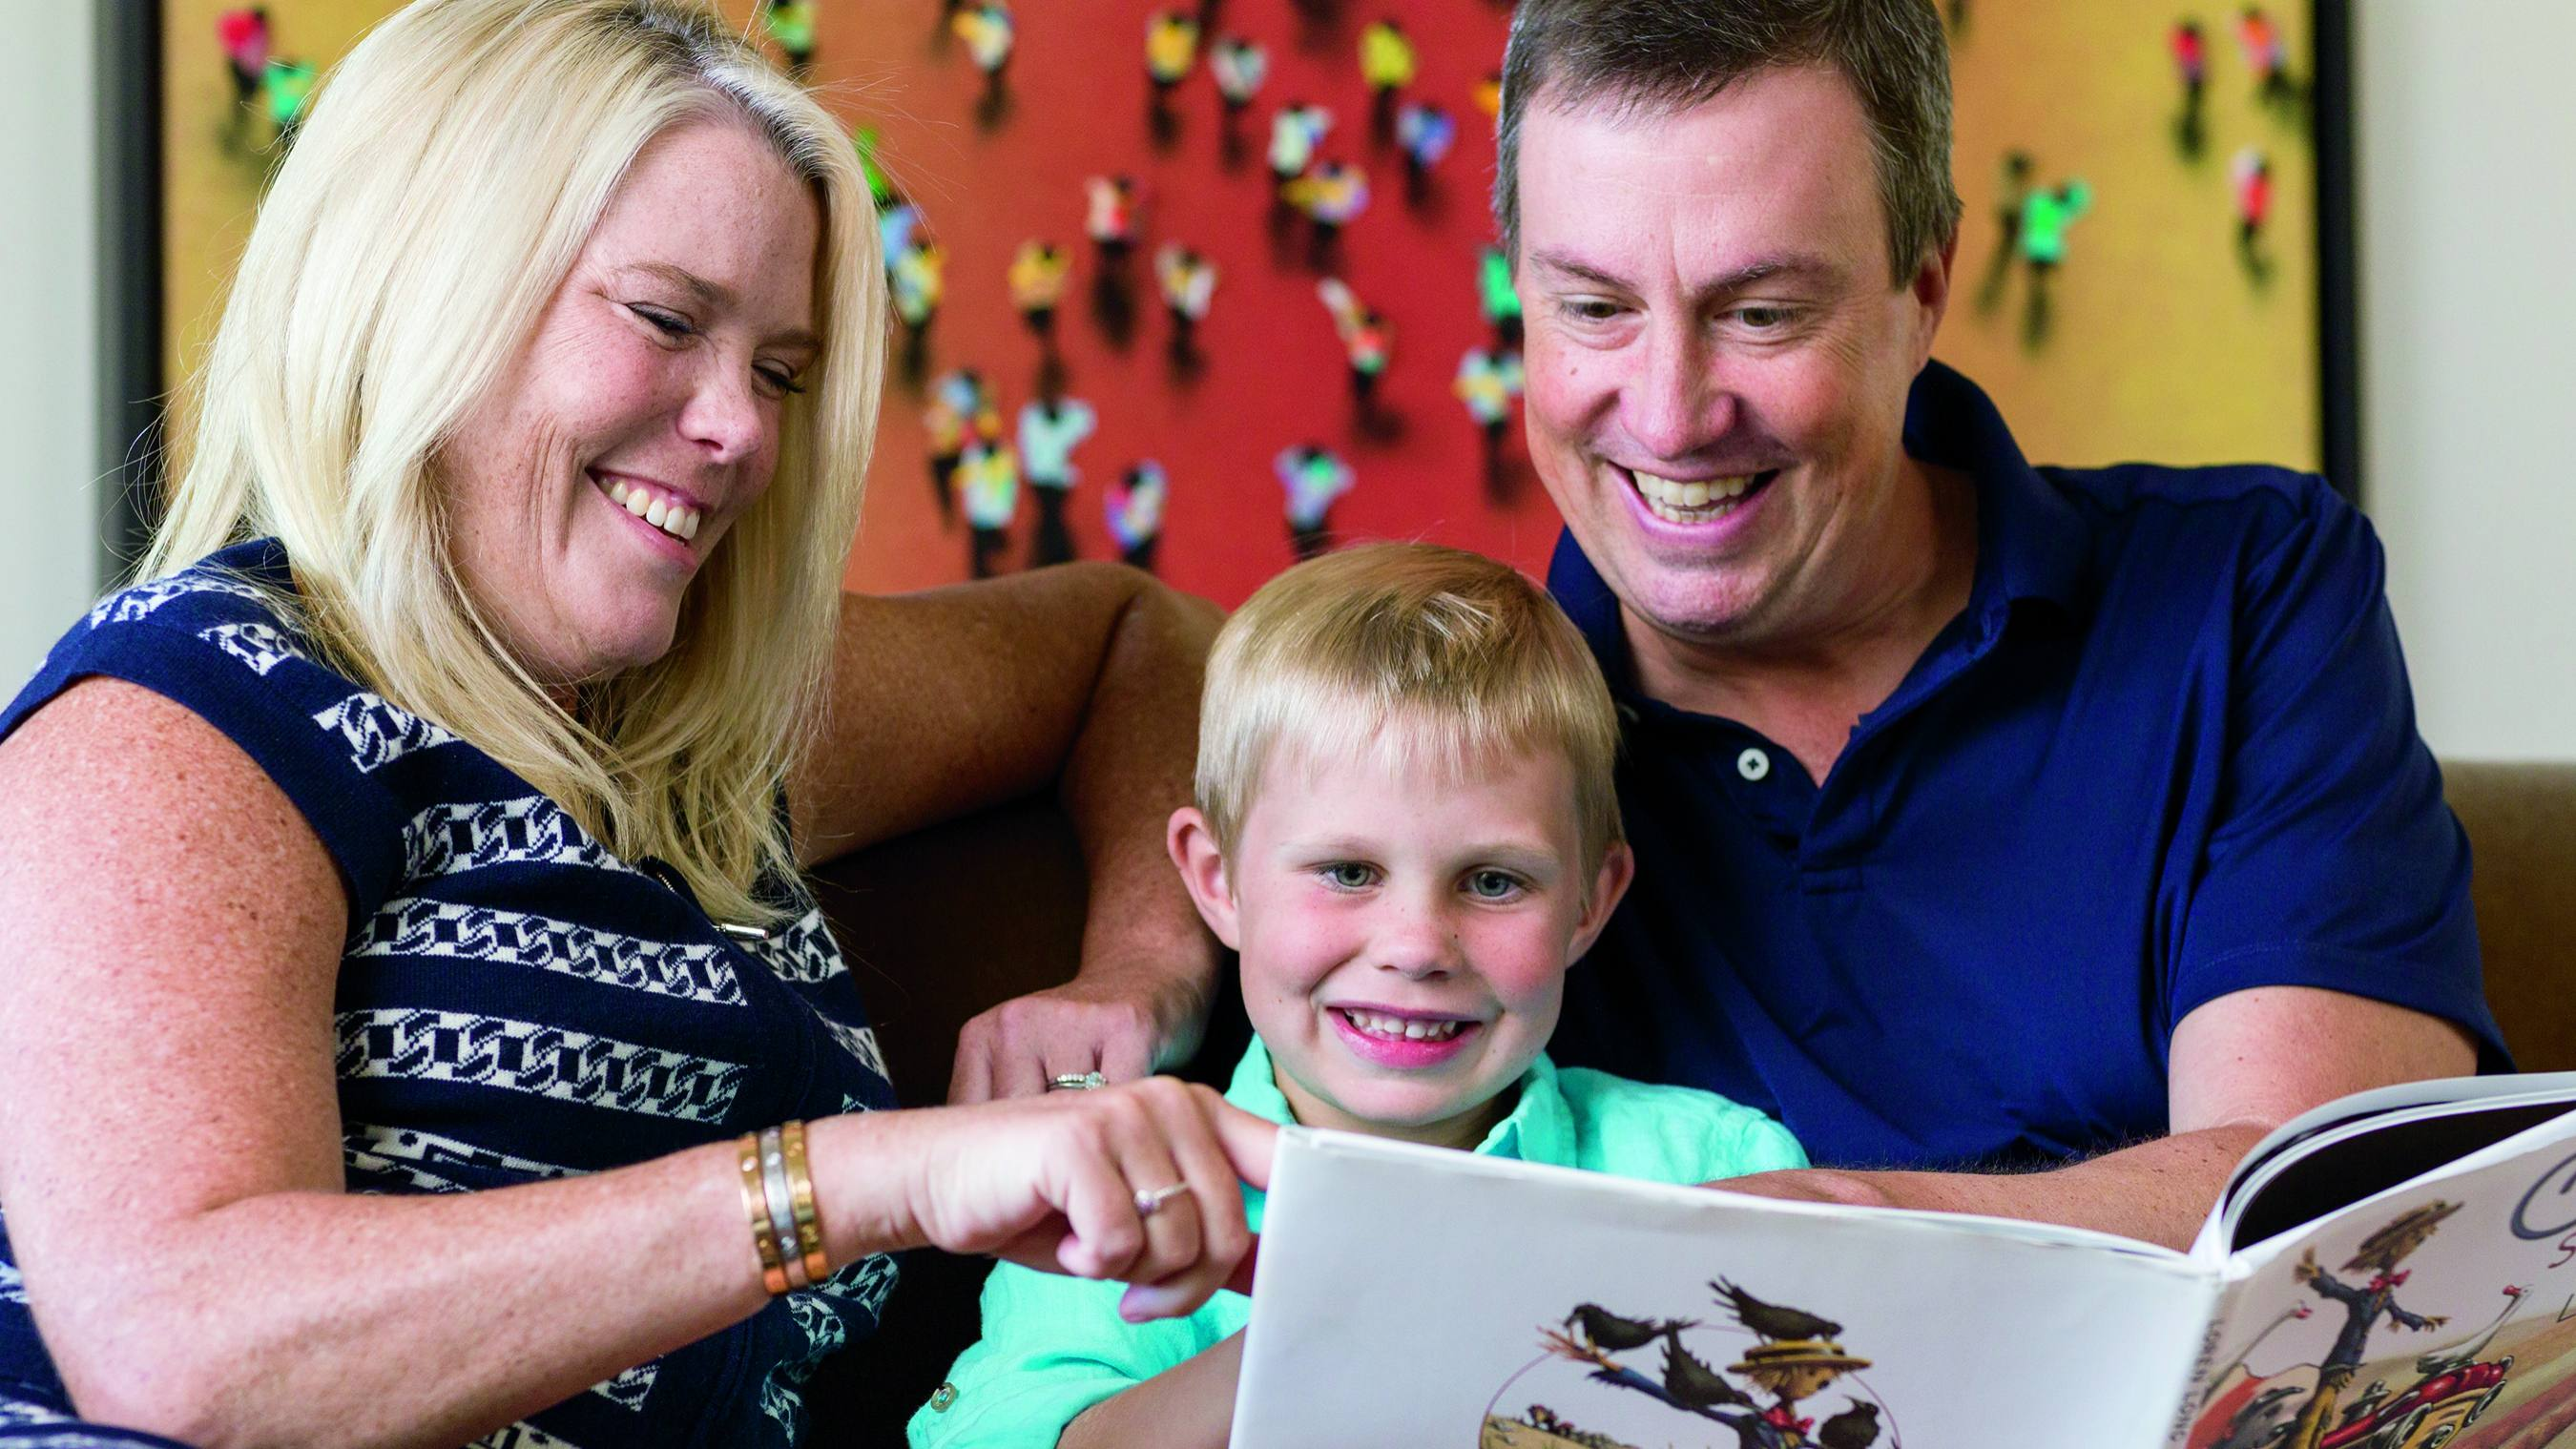 breast cancer patient Dawn Lenhardt smiling with her family and reading a children's book